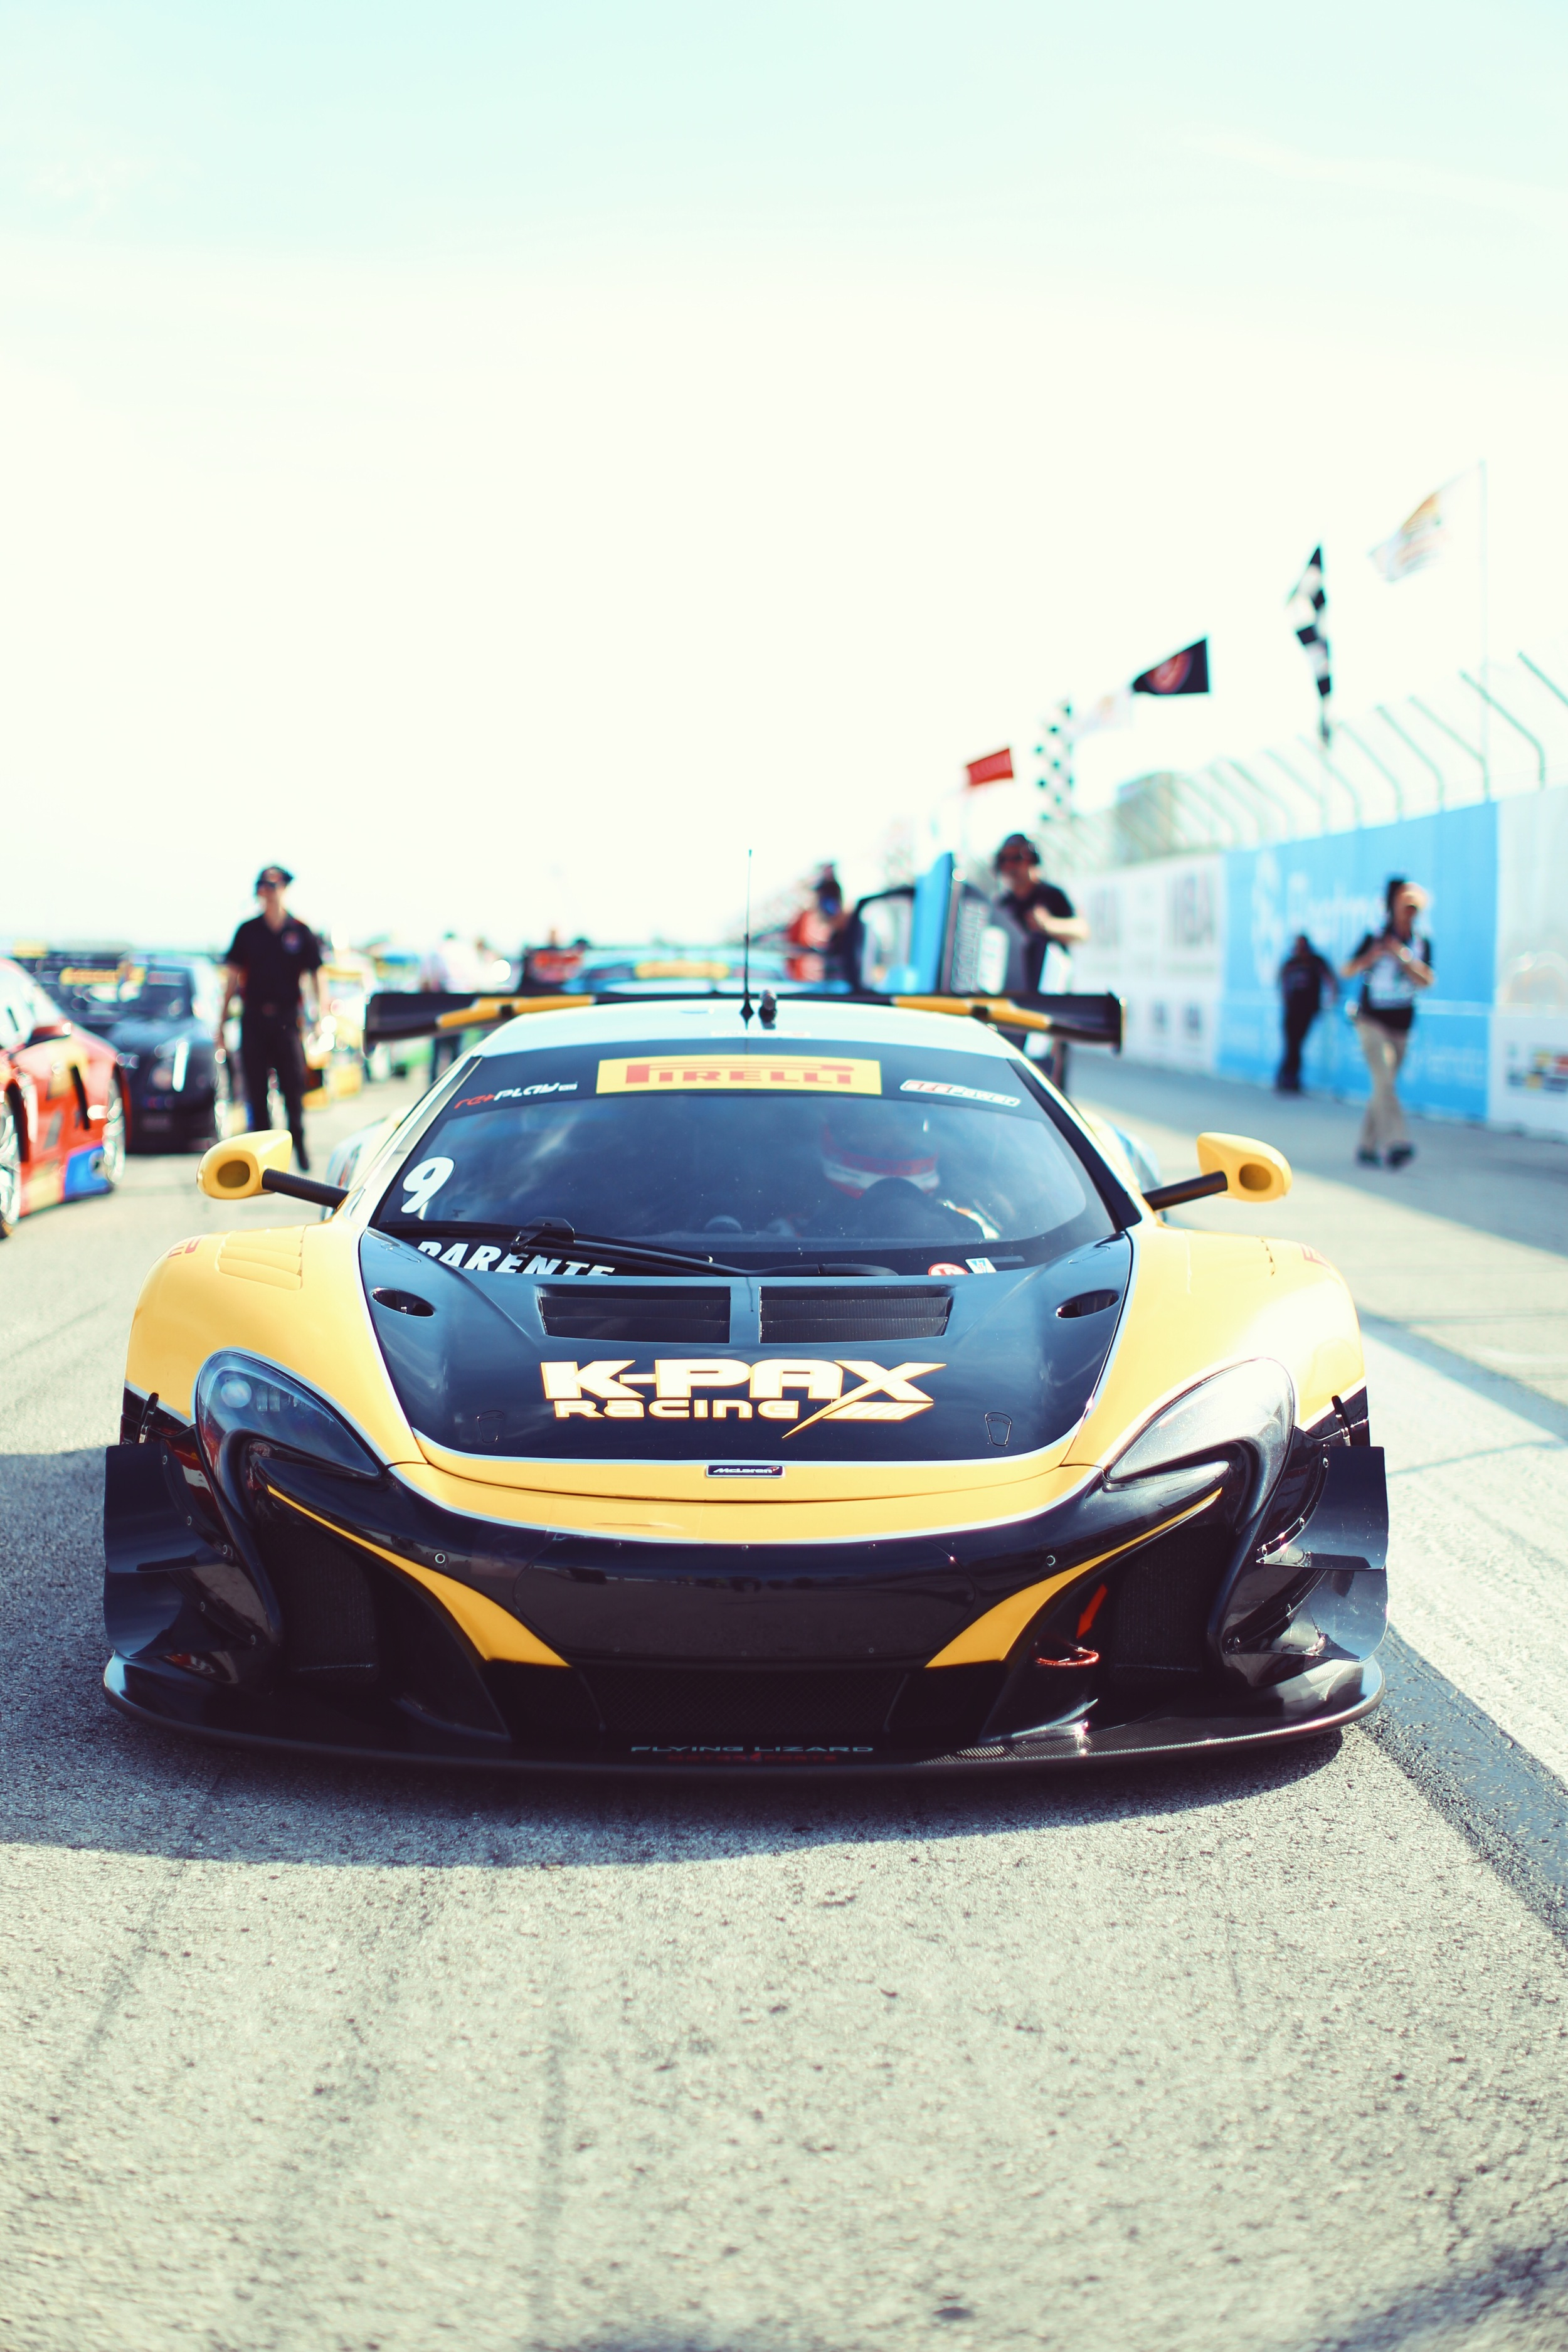 Alvaro Parante in his Kpax Racing McLaren. The team is trying to break into the top 3 in team and manufacturer standings for 2016.